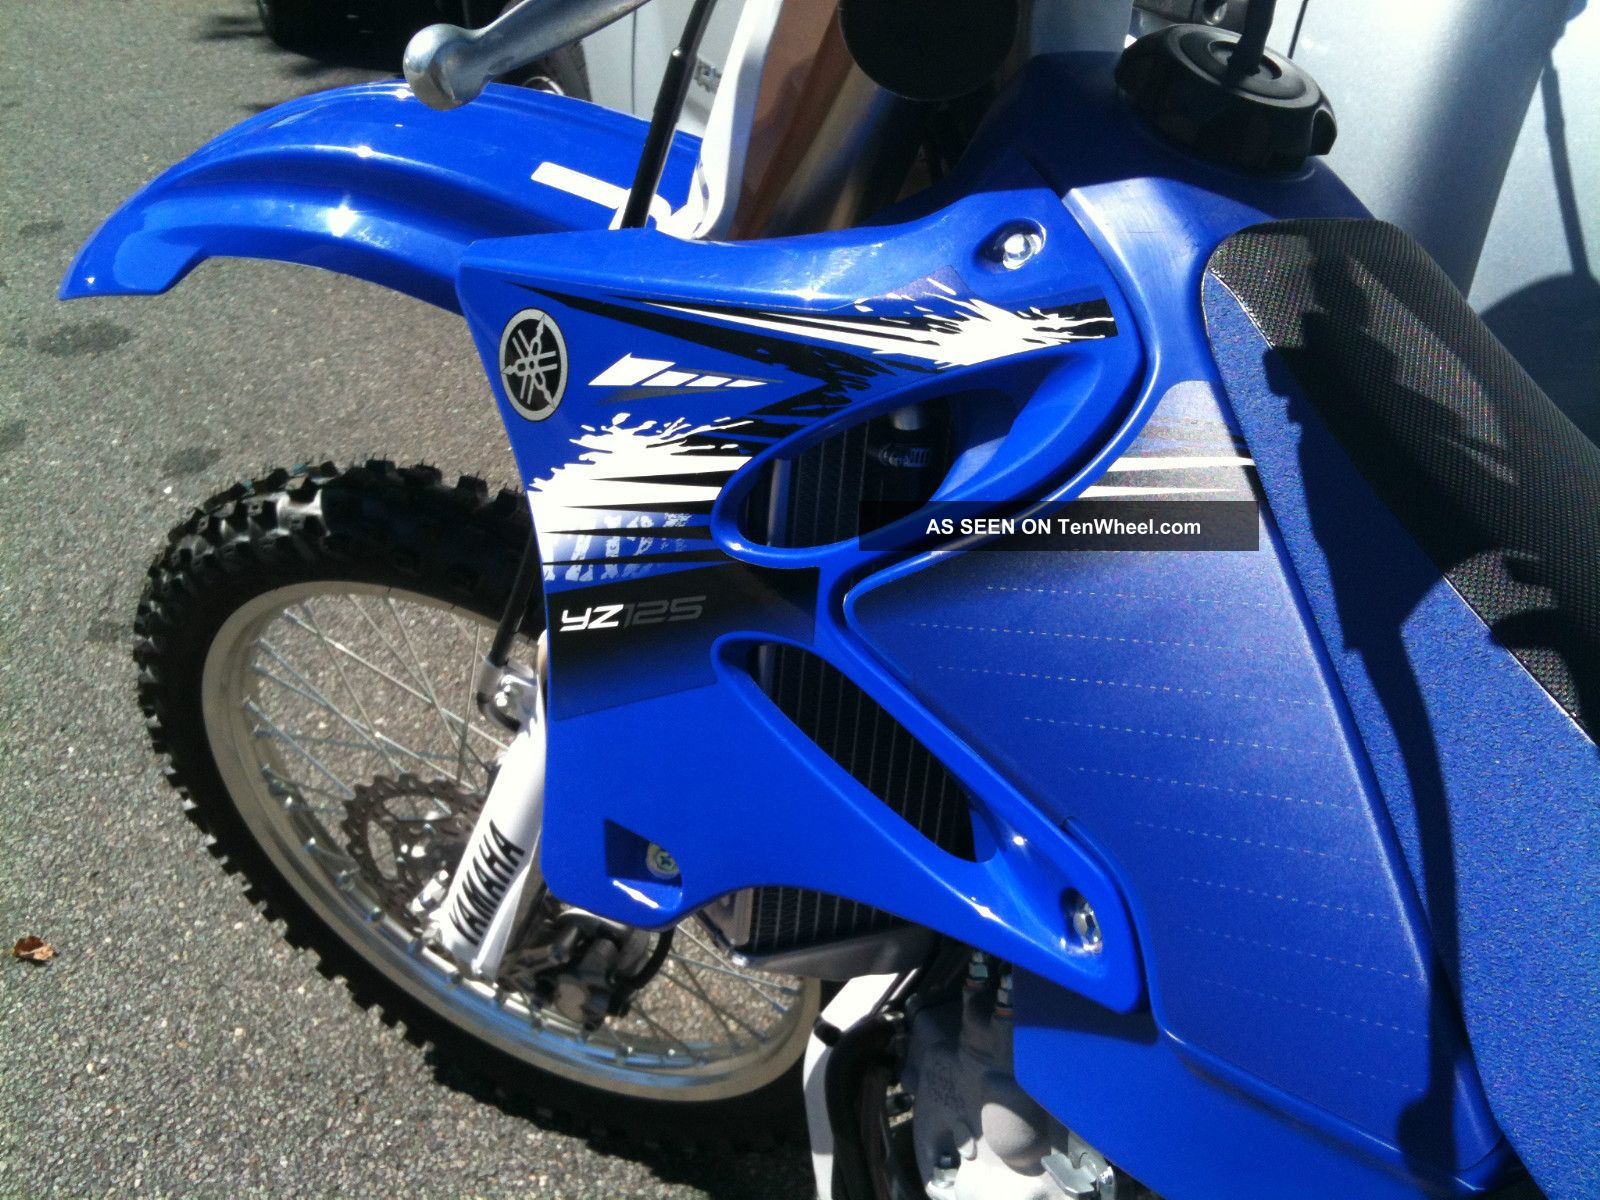 2012 Yamaha Yz125 / From My Dirt Bike Collection YZ photo